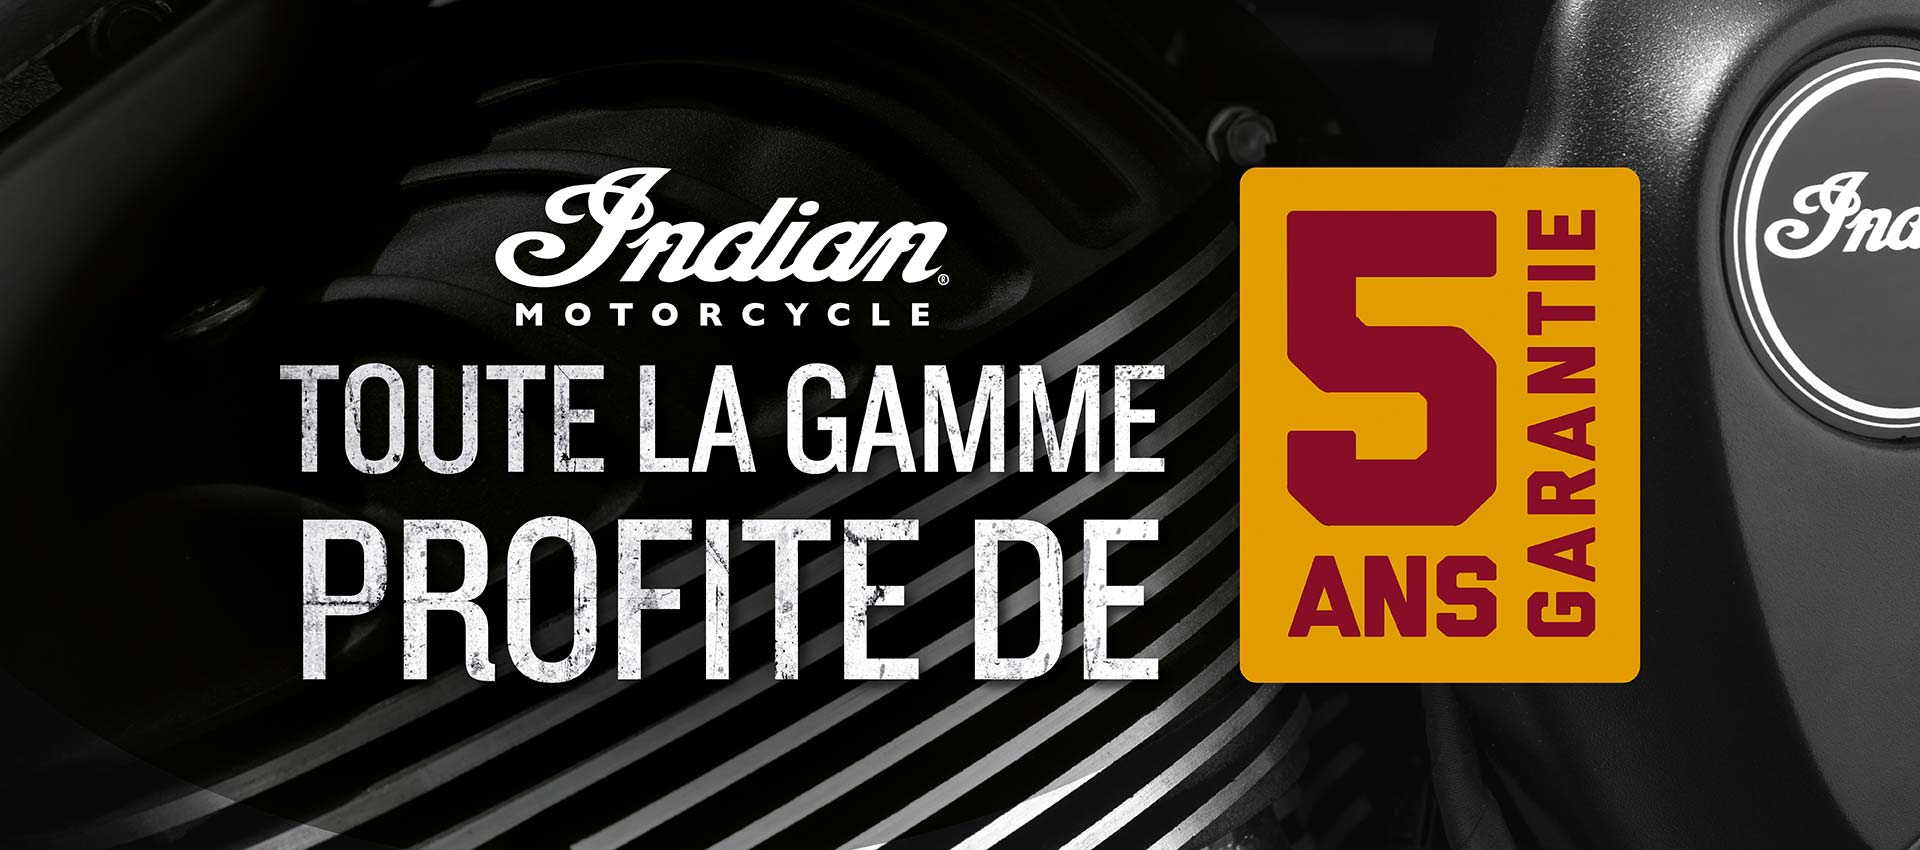 Indian Motorcycle Garantie 5 ans